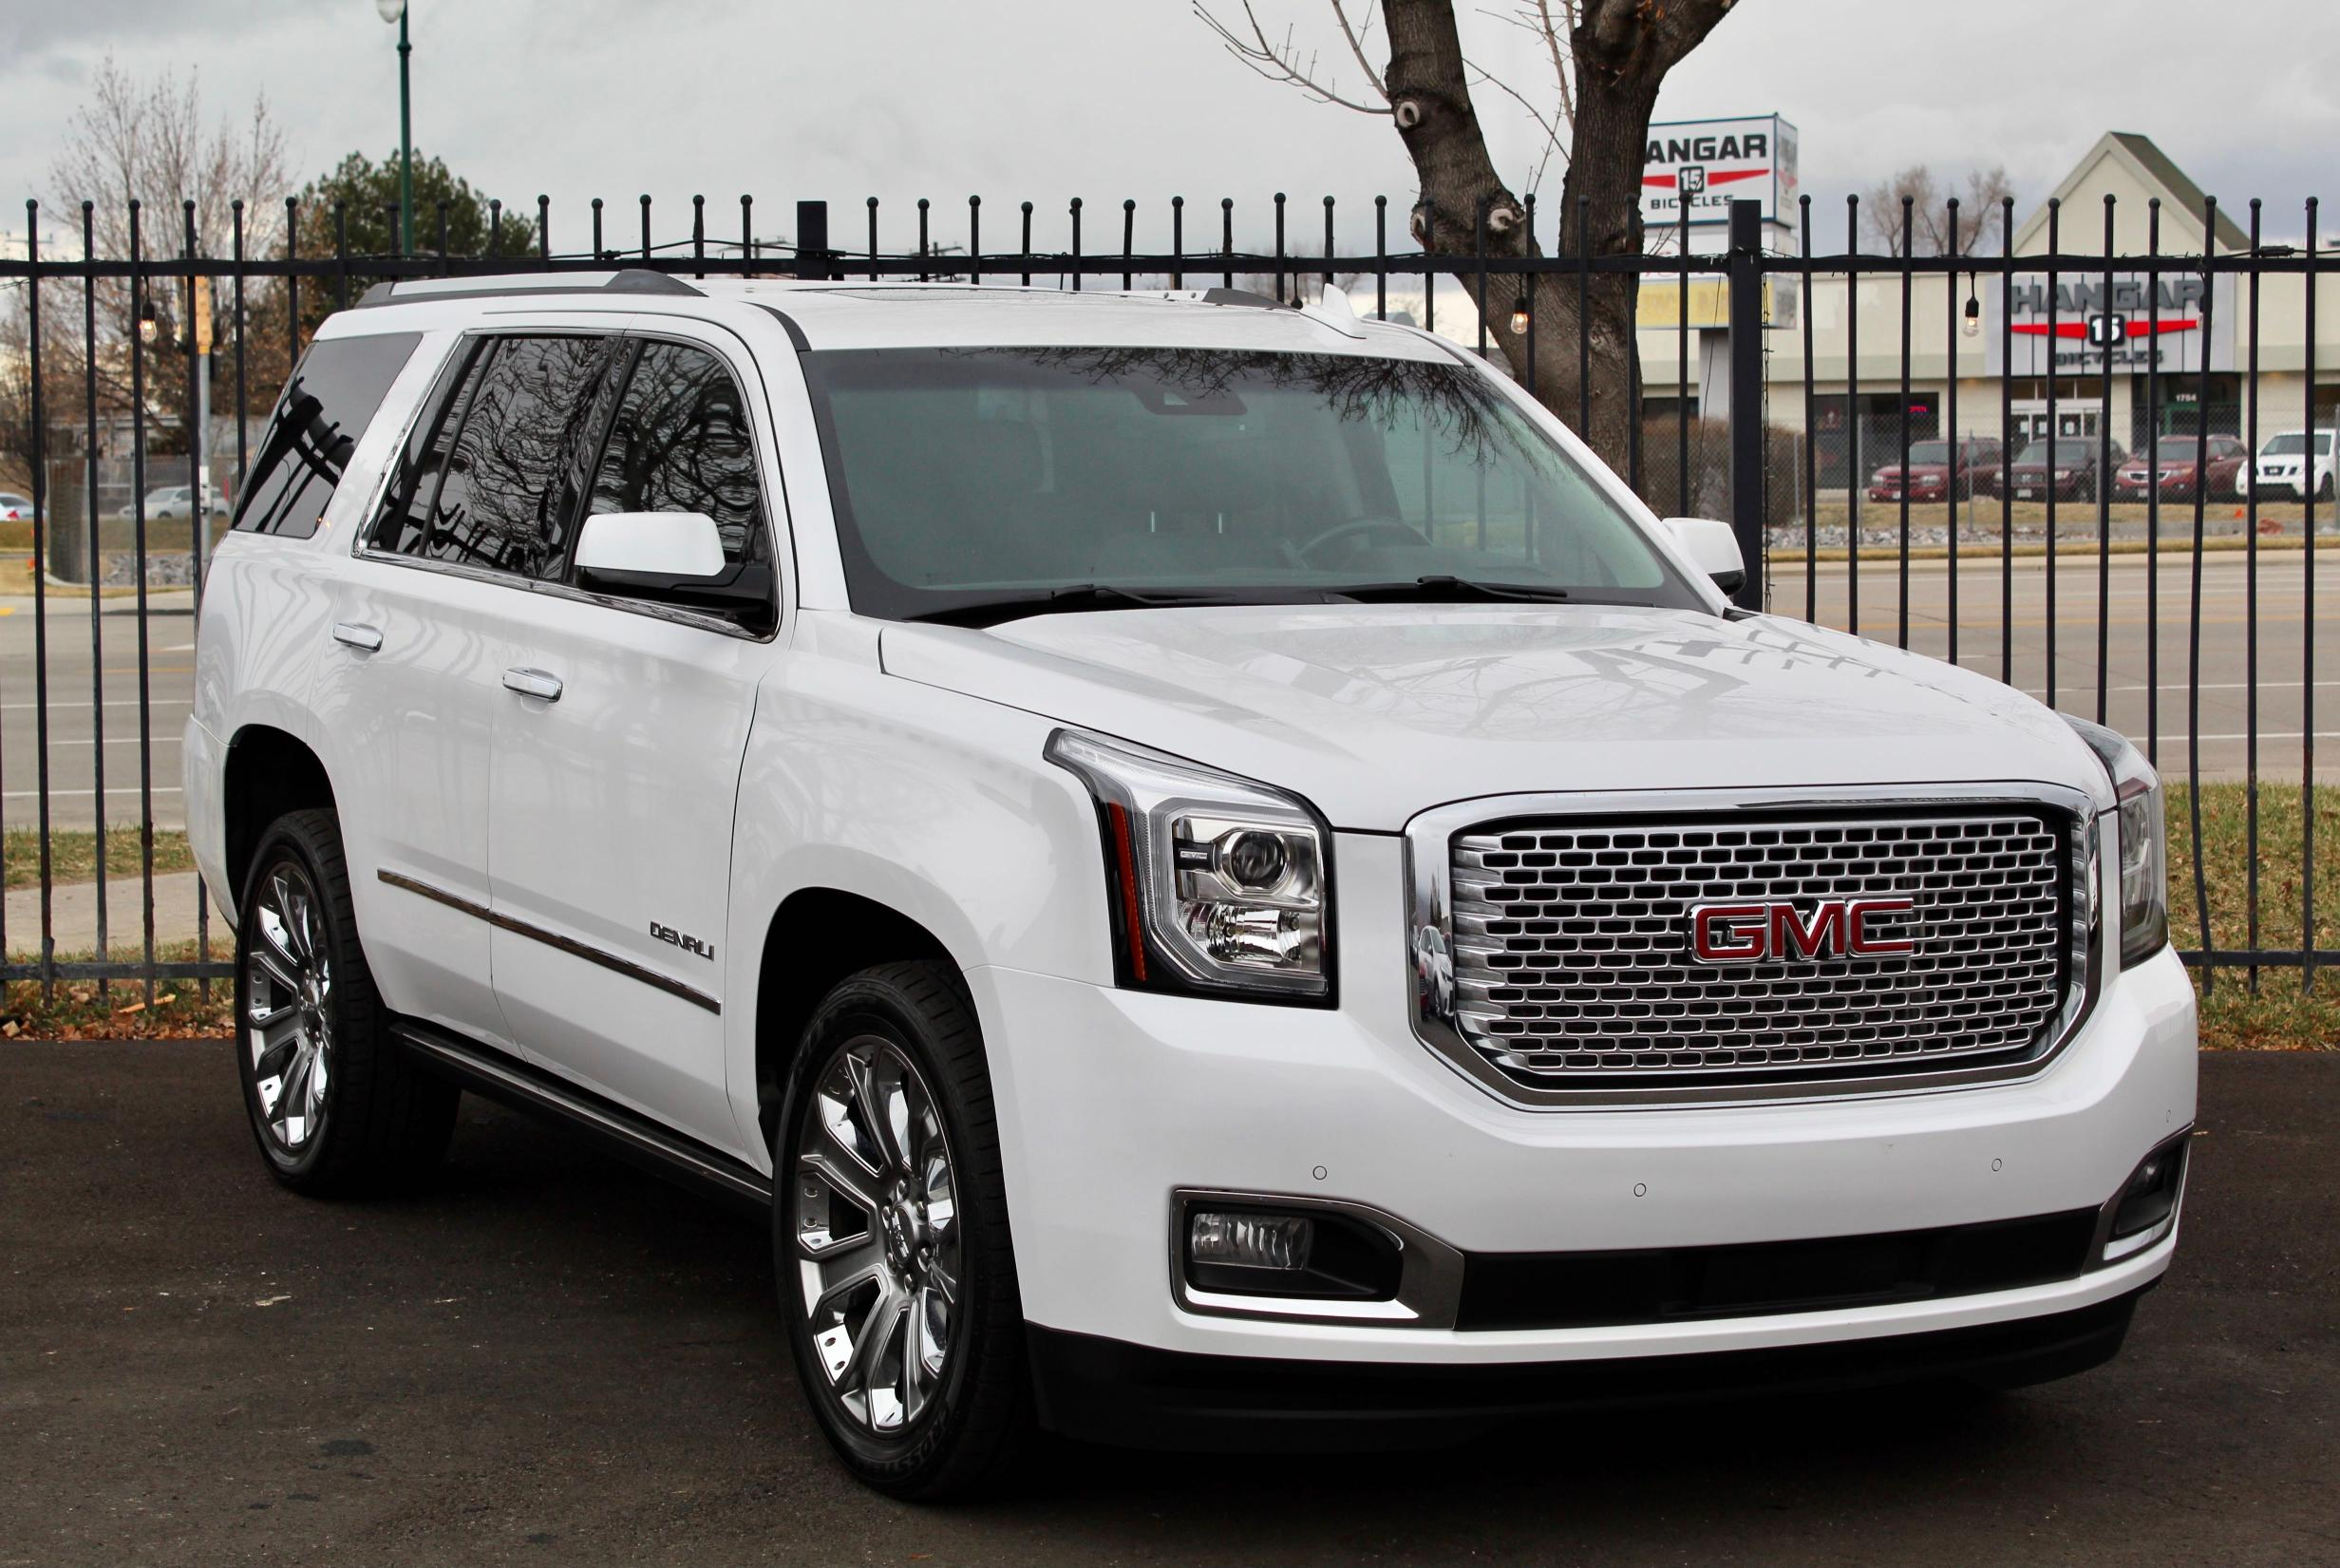 GMC salvage cars for sale: 2016 GMC Yukon Dena